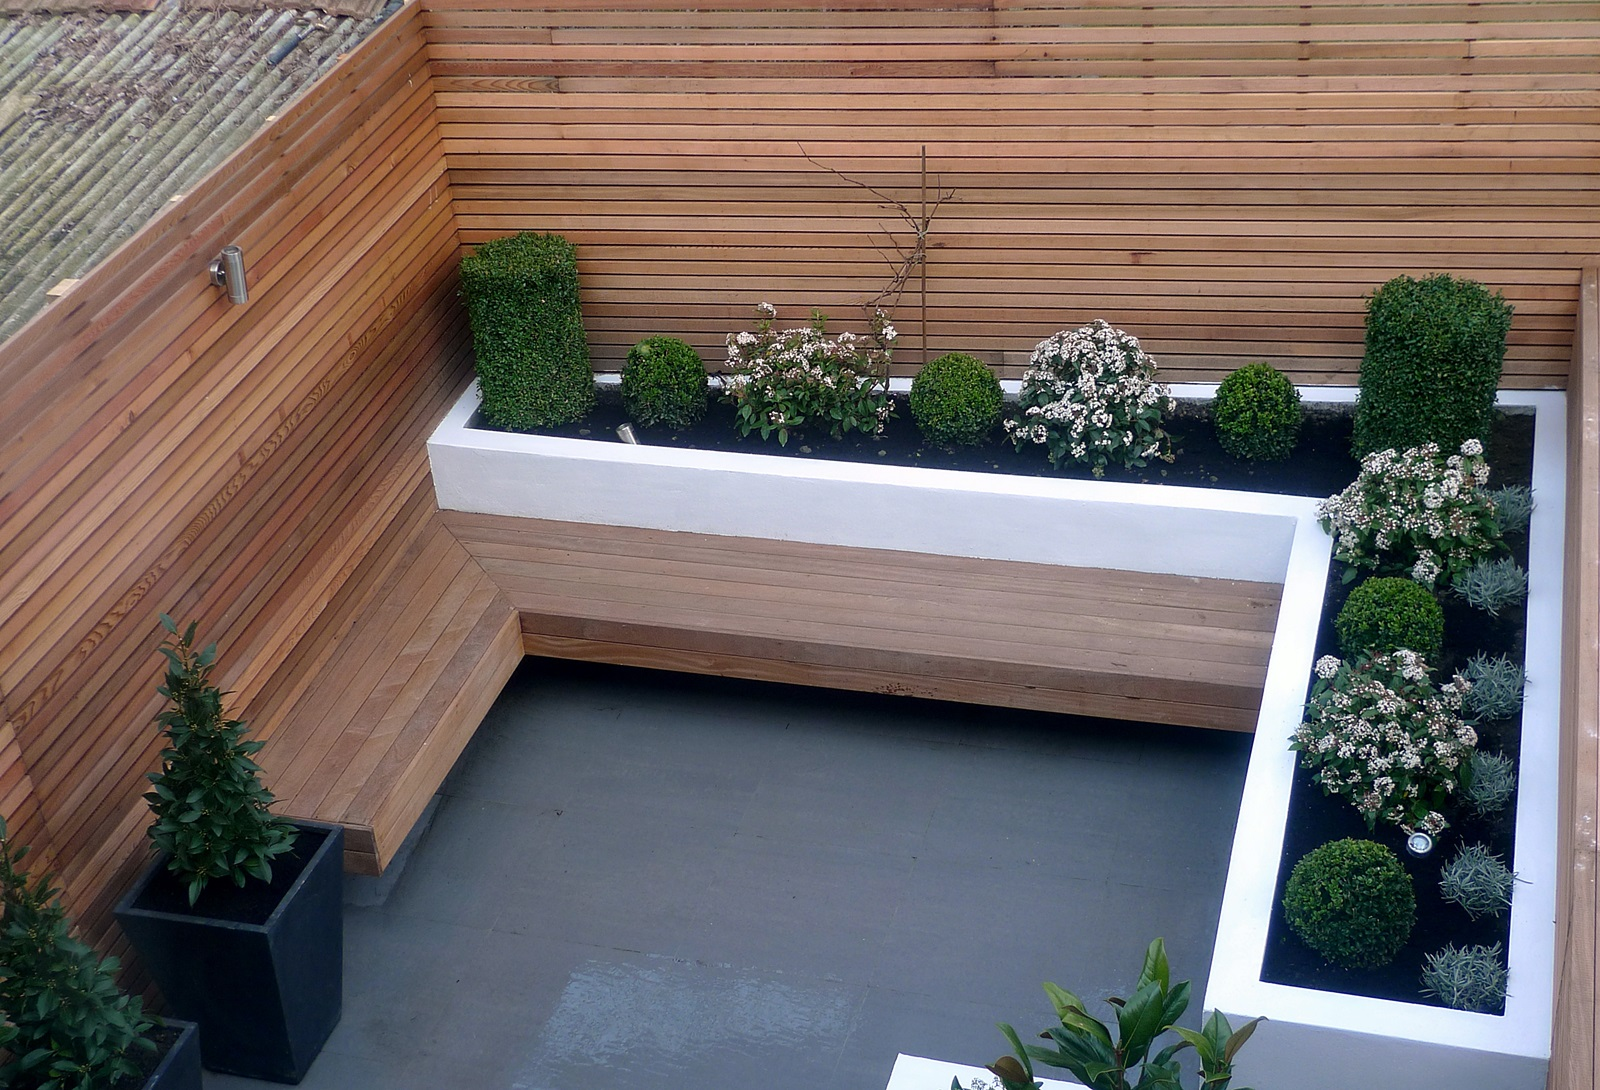 Garden design designer clapham balham battersea small for Garden design new build house